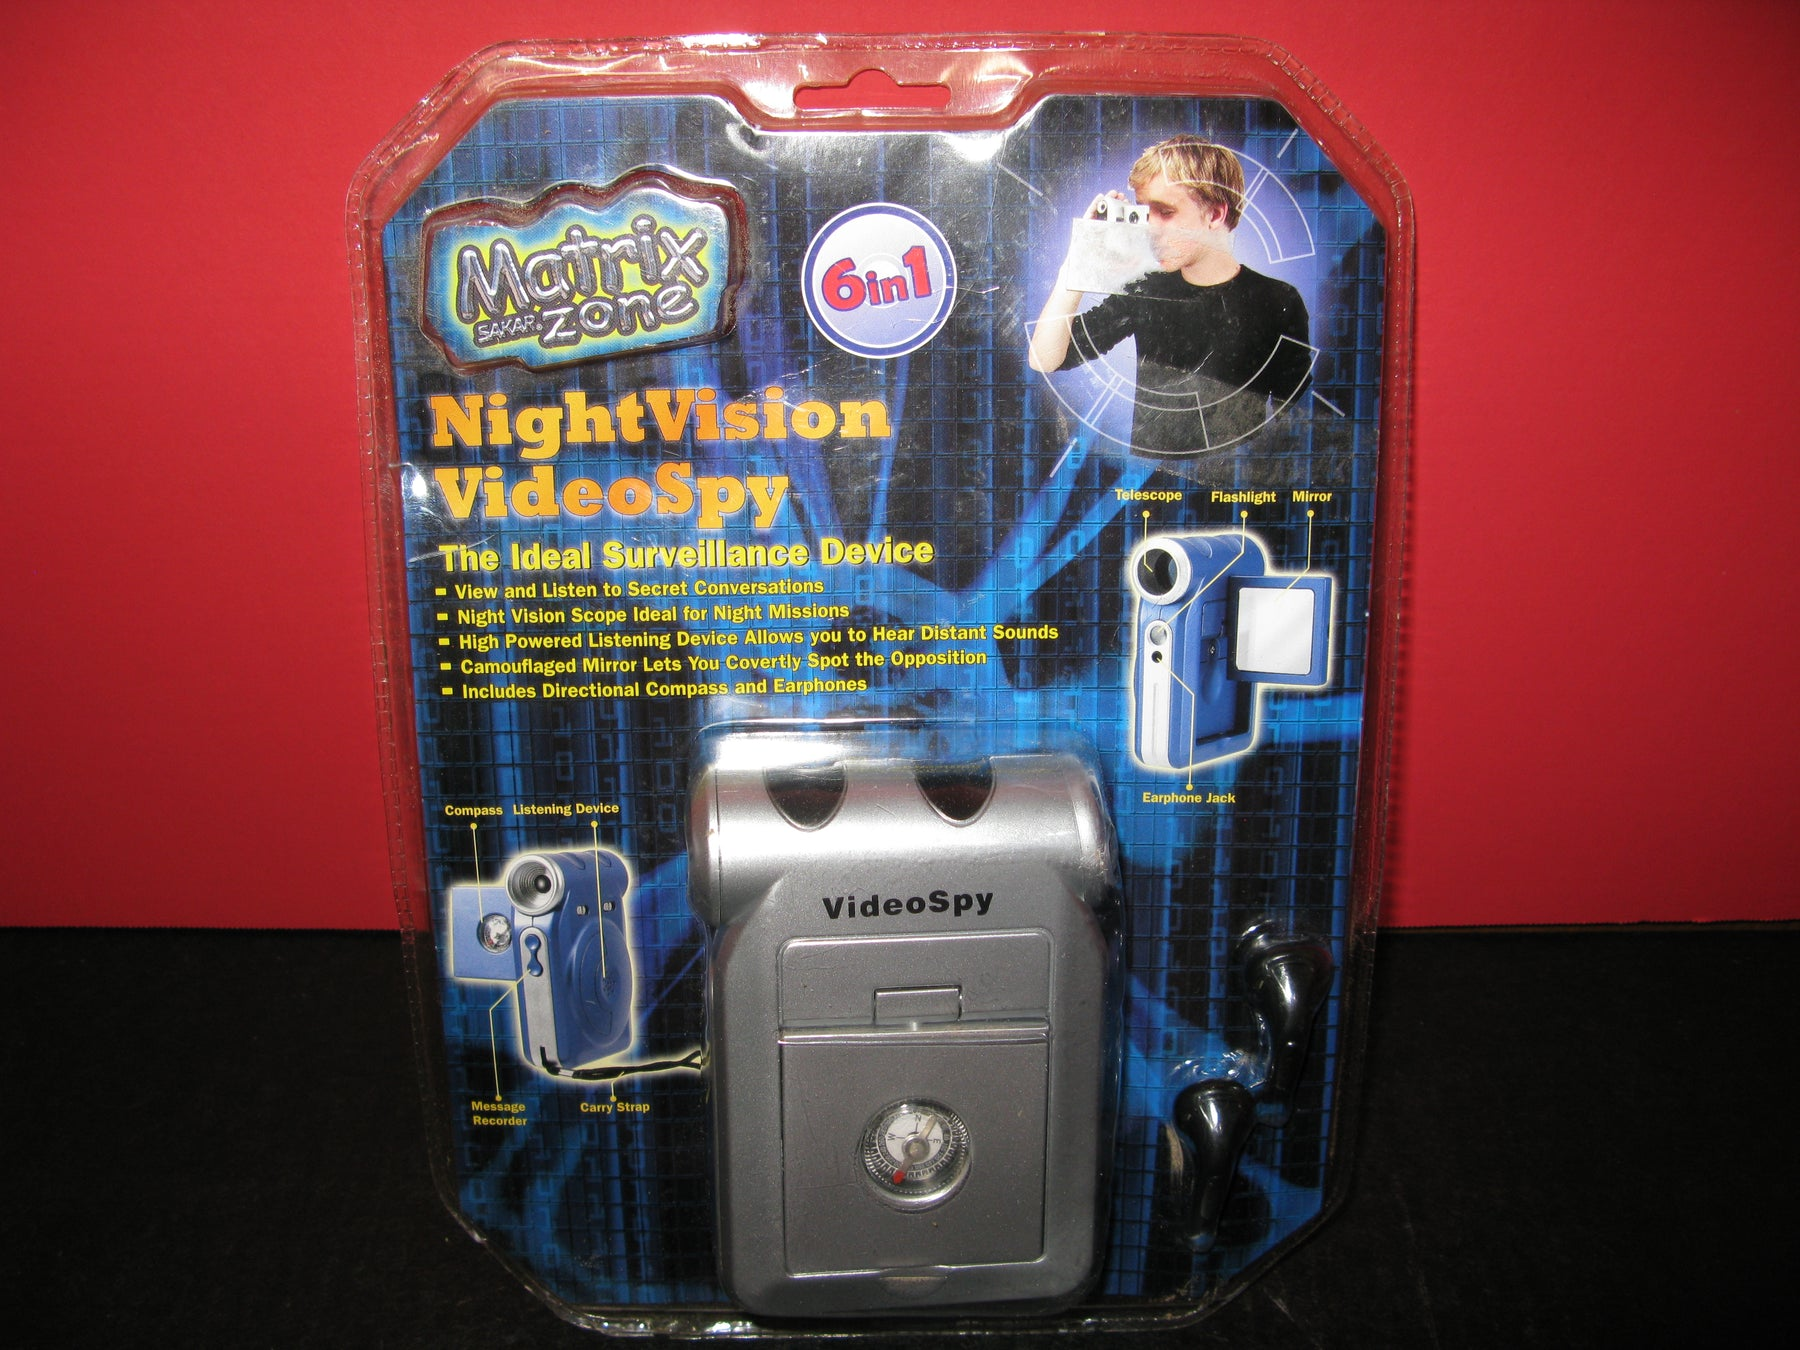 Matrix Zone-Night Vision Video Spy 6 in 1